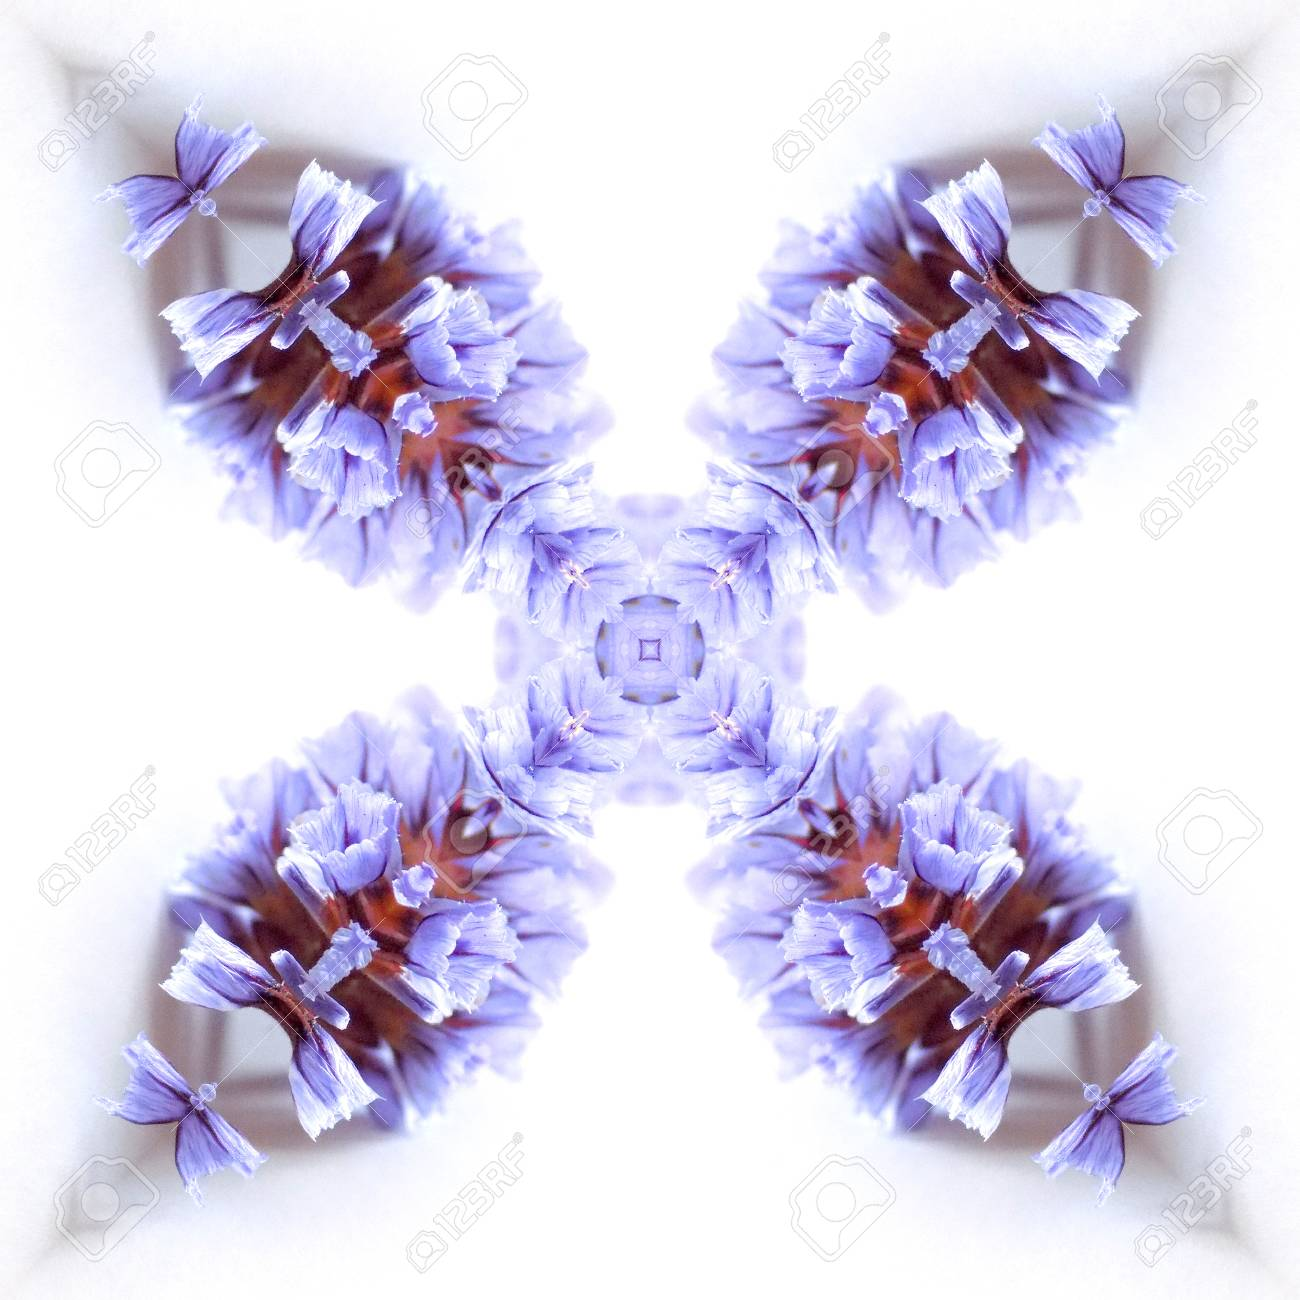 Abstract flowers seamless pattern background. Kaleidoscope from flowers. Hydraulic tile design. - 104075020